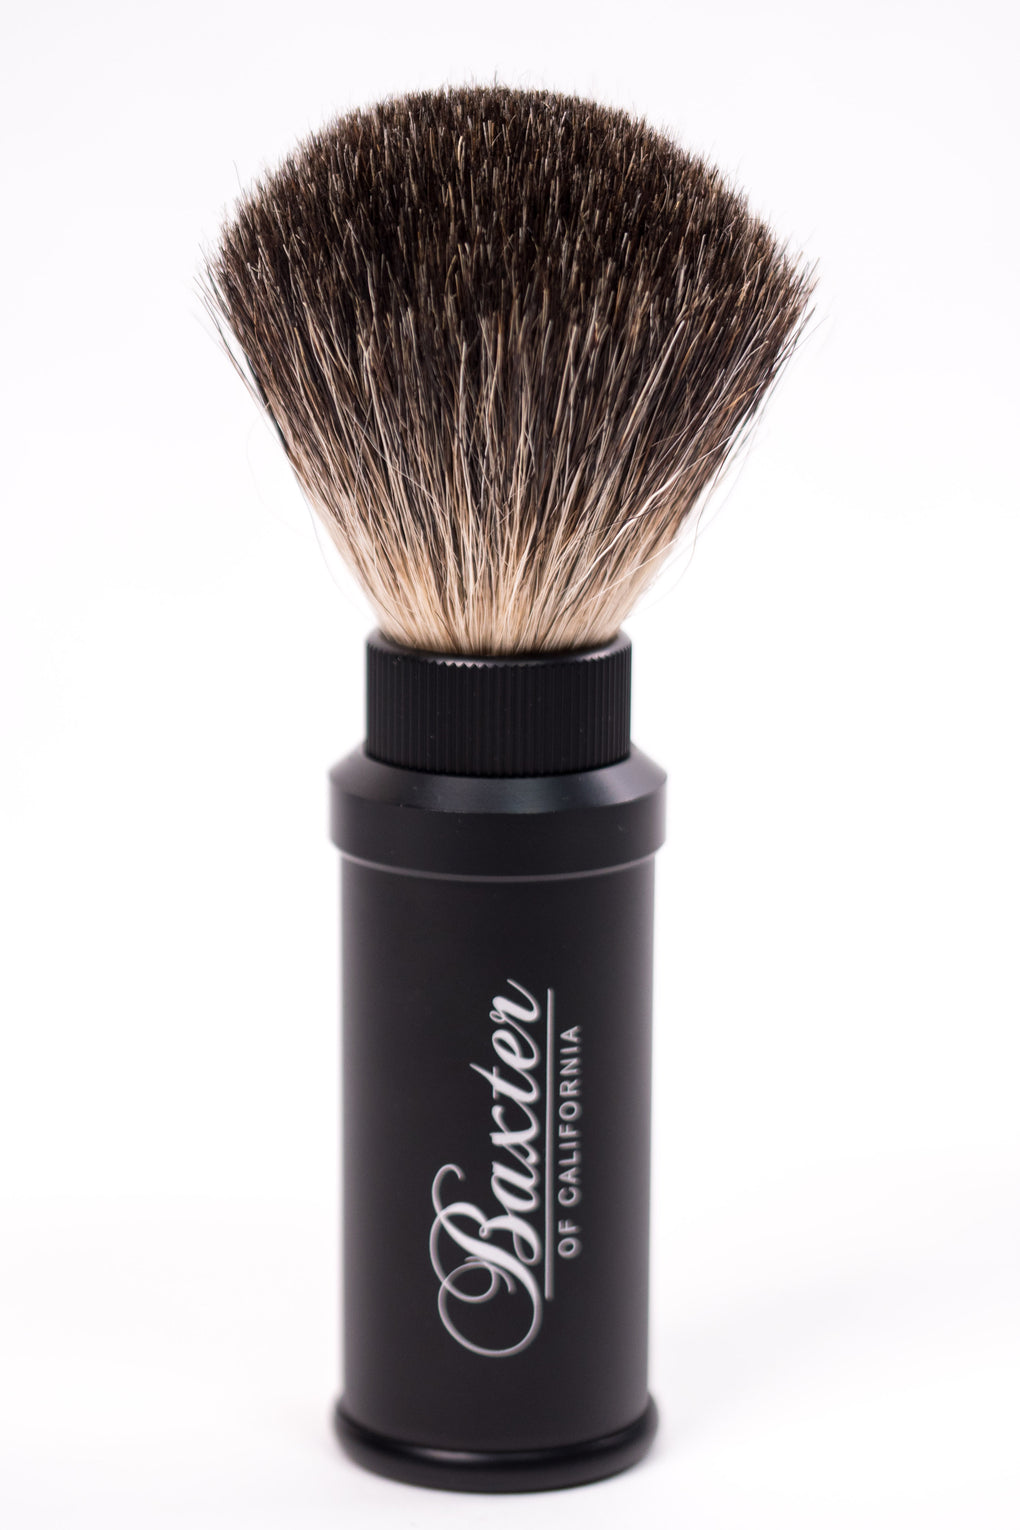 Baxter Badger Hair Aluminum Travel Shave Brush at Consigliere